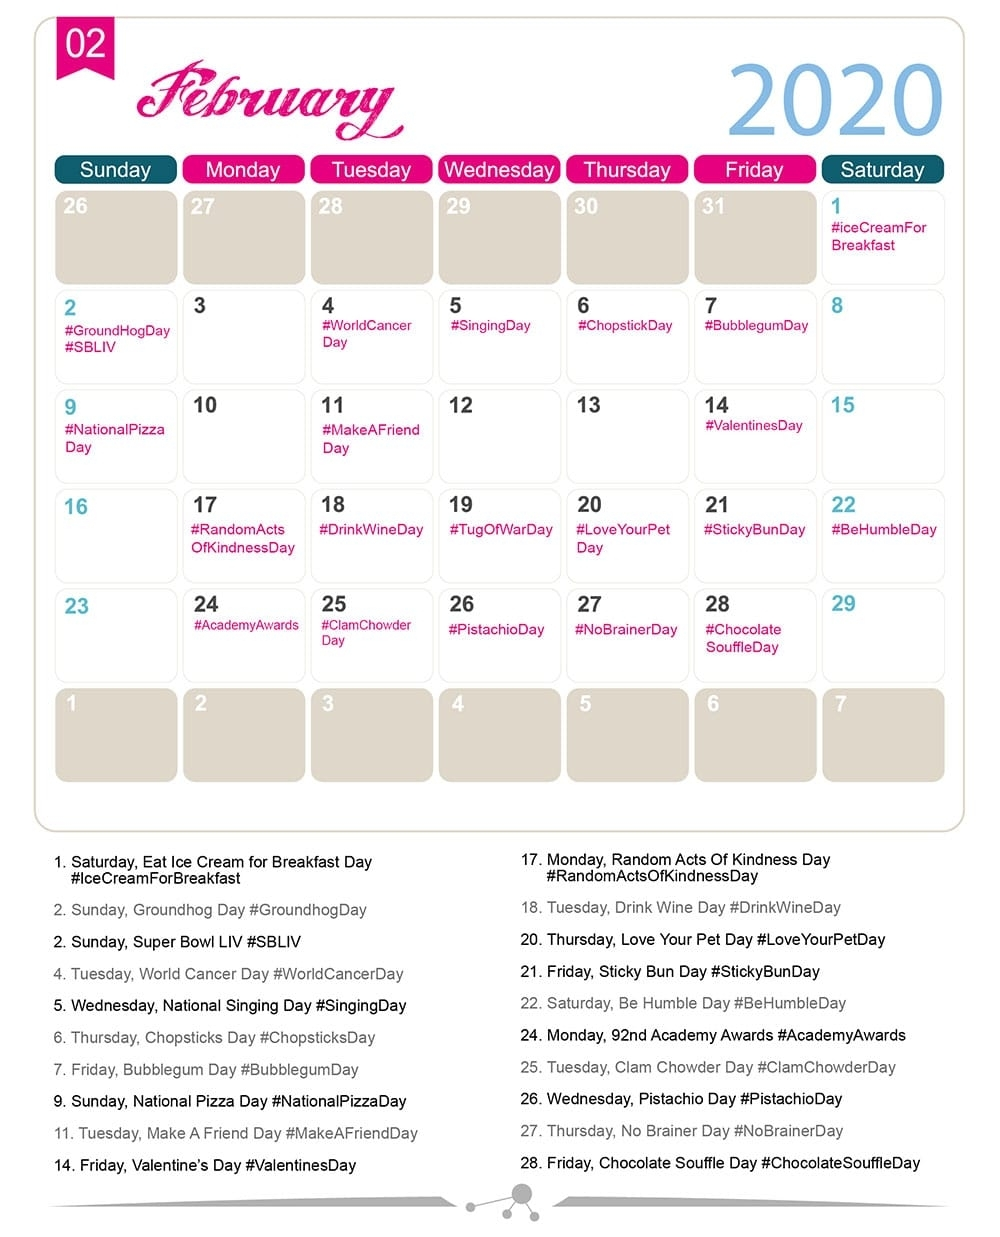 The 2020 Social Media Holiday Calendar - Make A Website Hub with regard to Please Find A Calendar On Line For Special Days Of The Year 2020